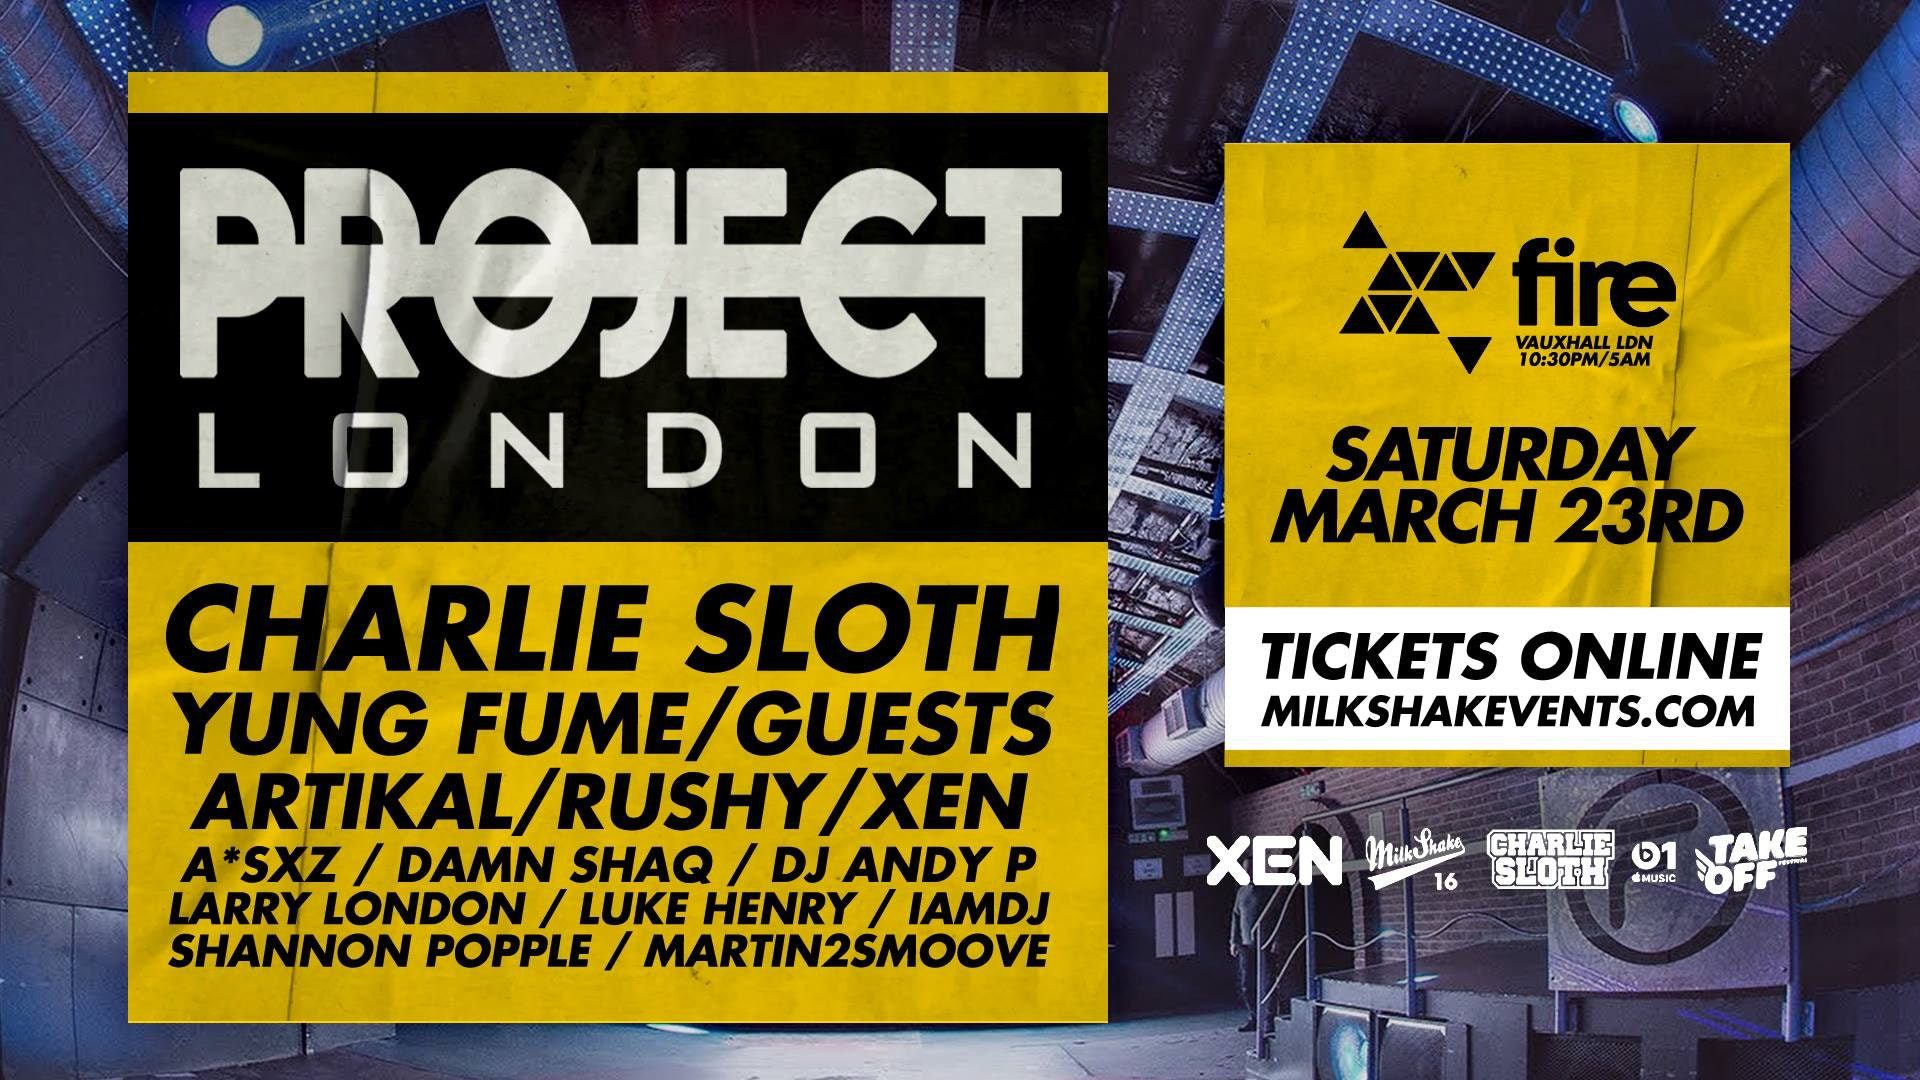 Project London TONIGHT – ft: Charlie Sloth, Yung Fume, Rushy, Xen Sounds & More   Fire, Vauxhall